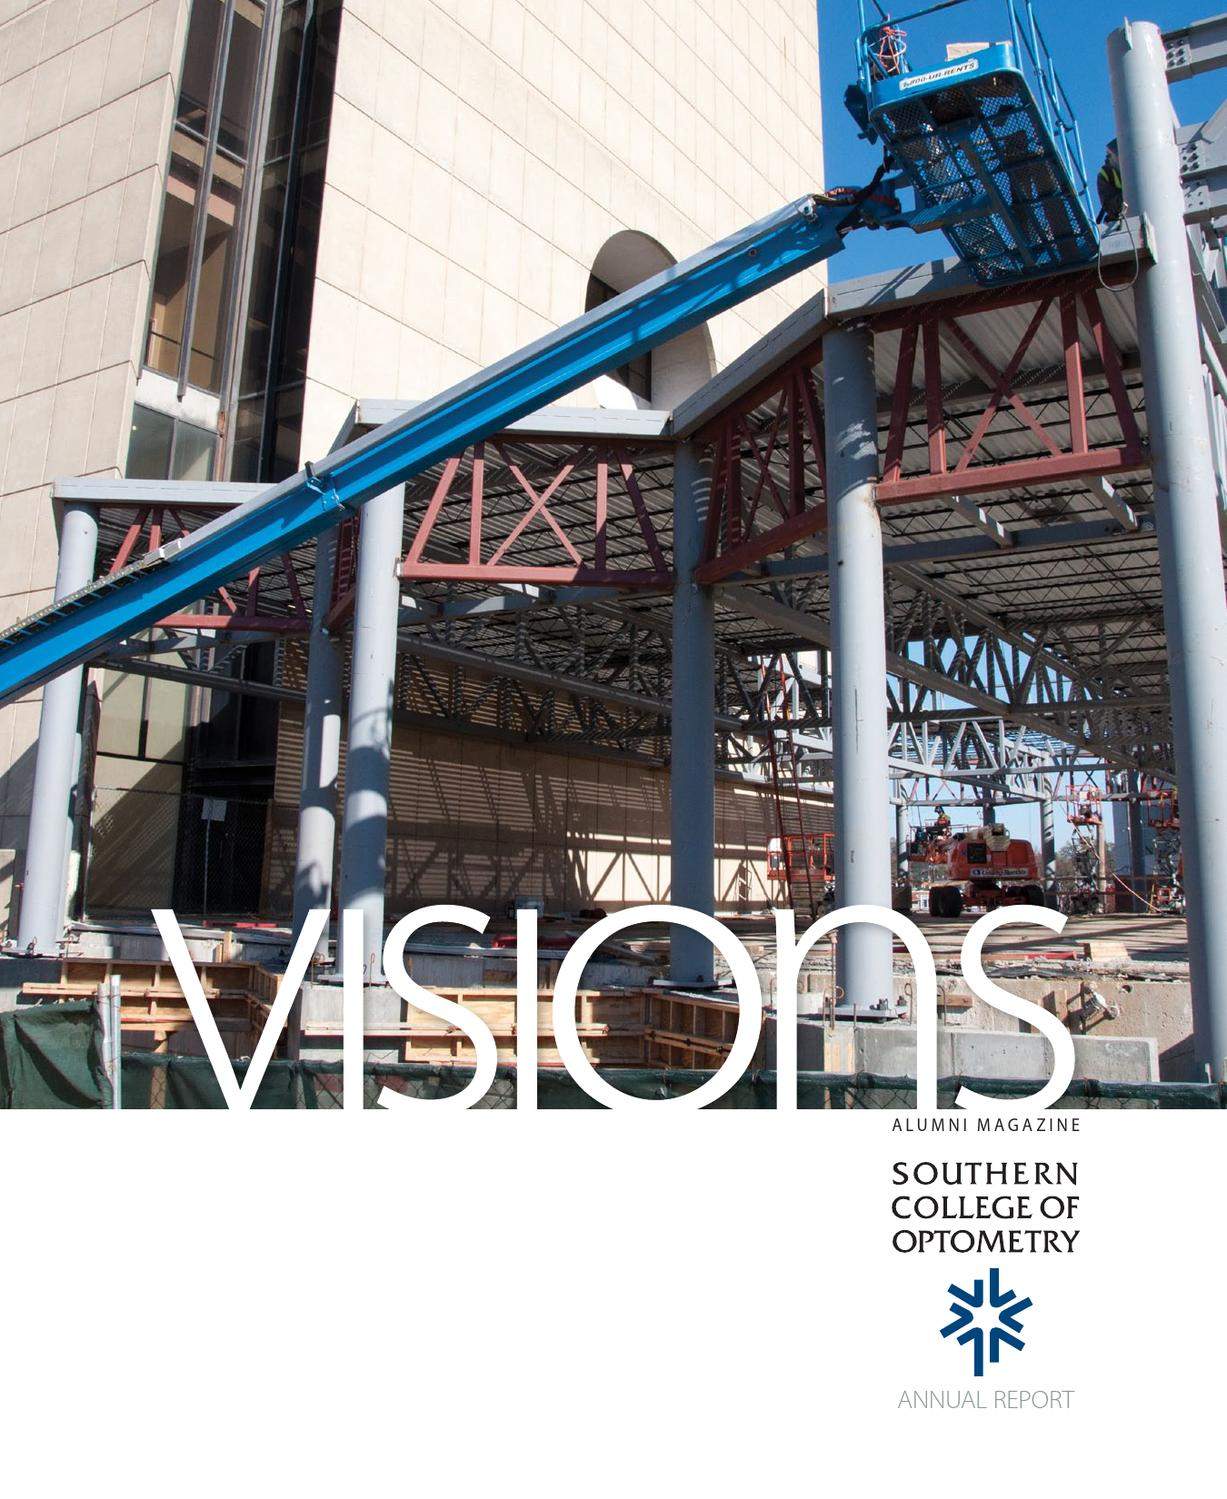 visions alumni magazine - annual report 2012 - southern college of